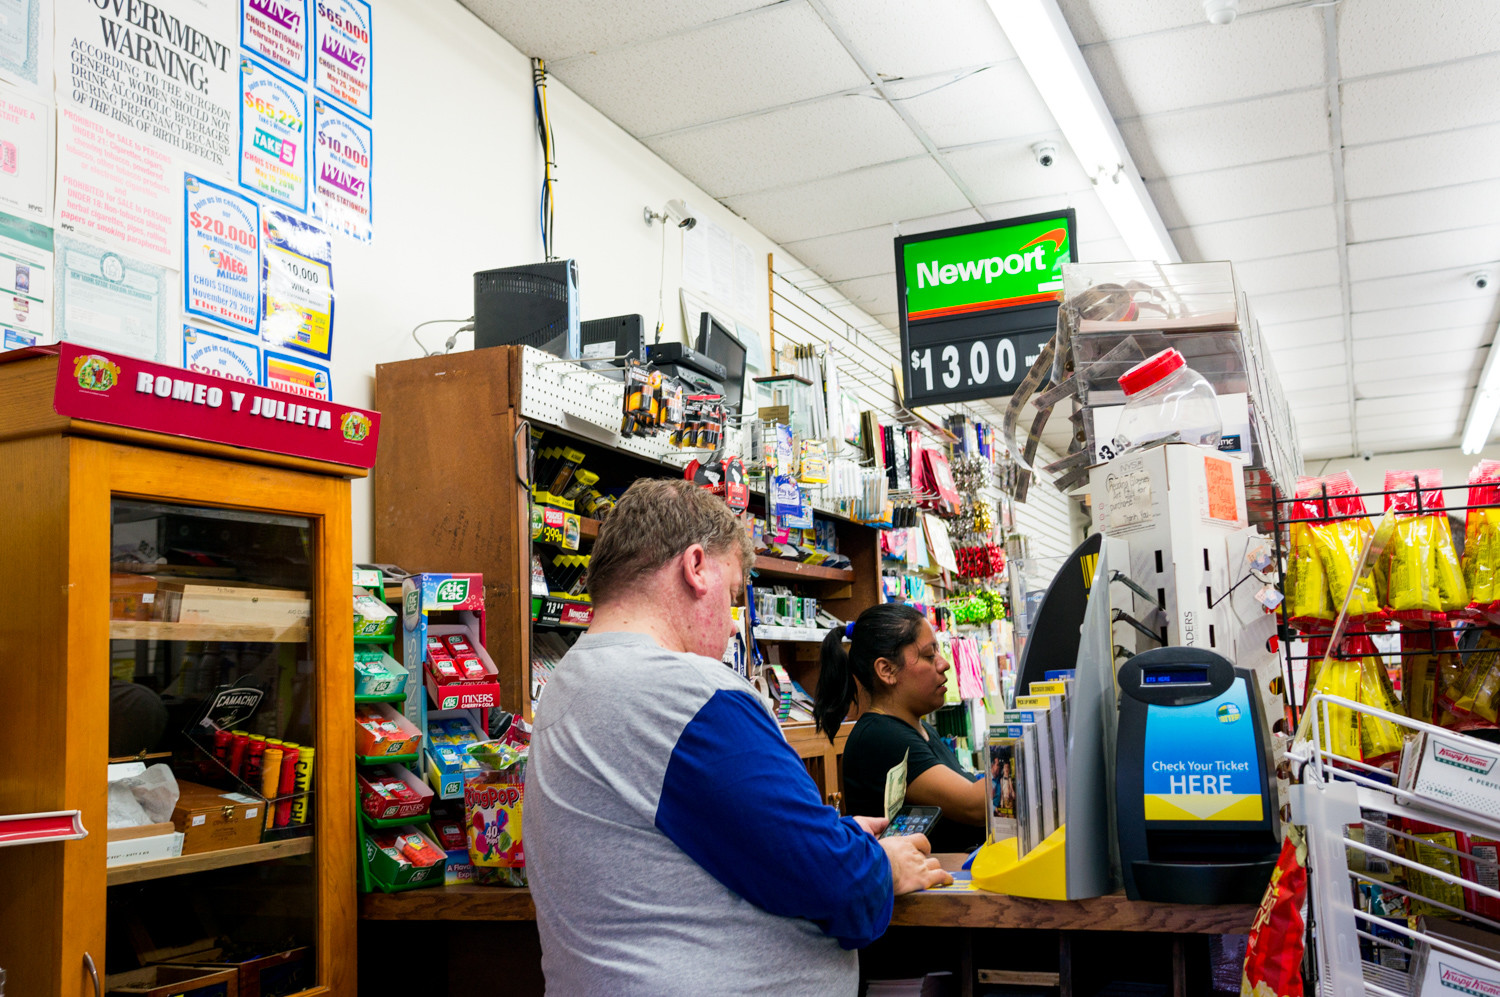 A customer purchases lotto tickets at Larry's Lucky Lotto.